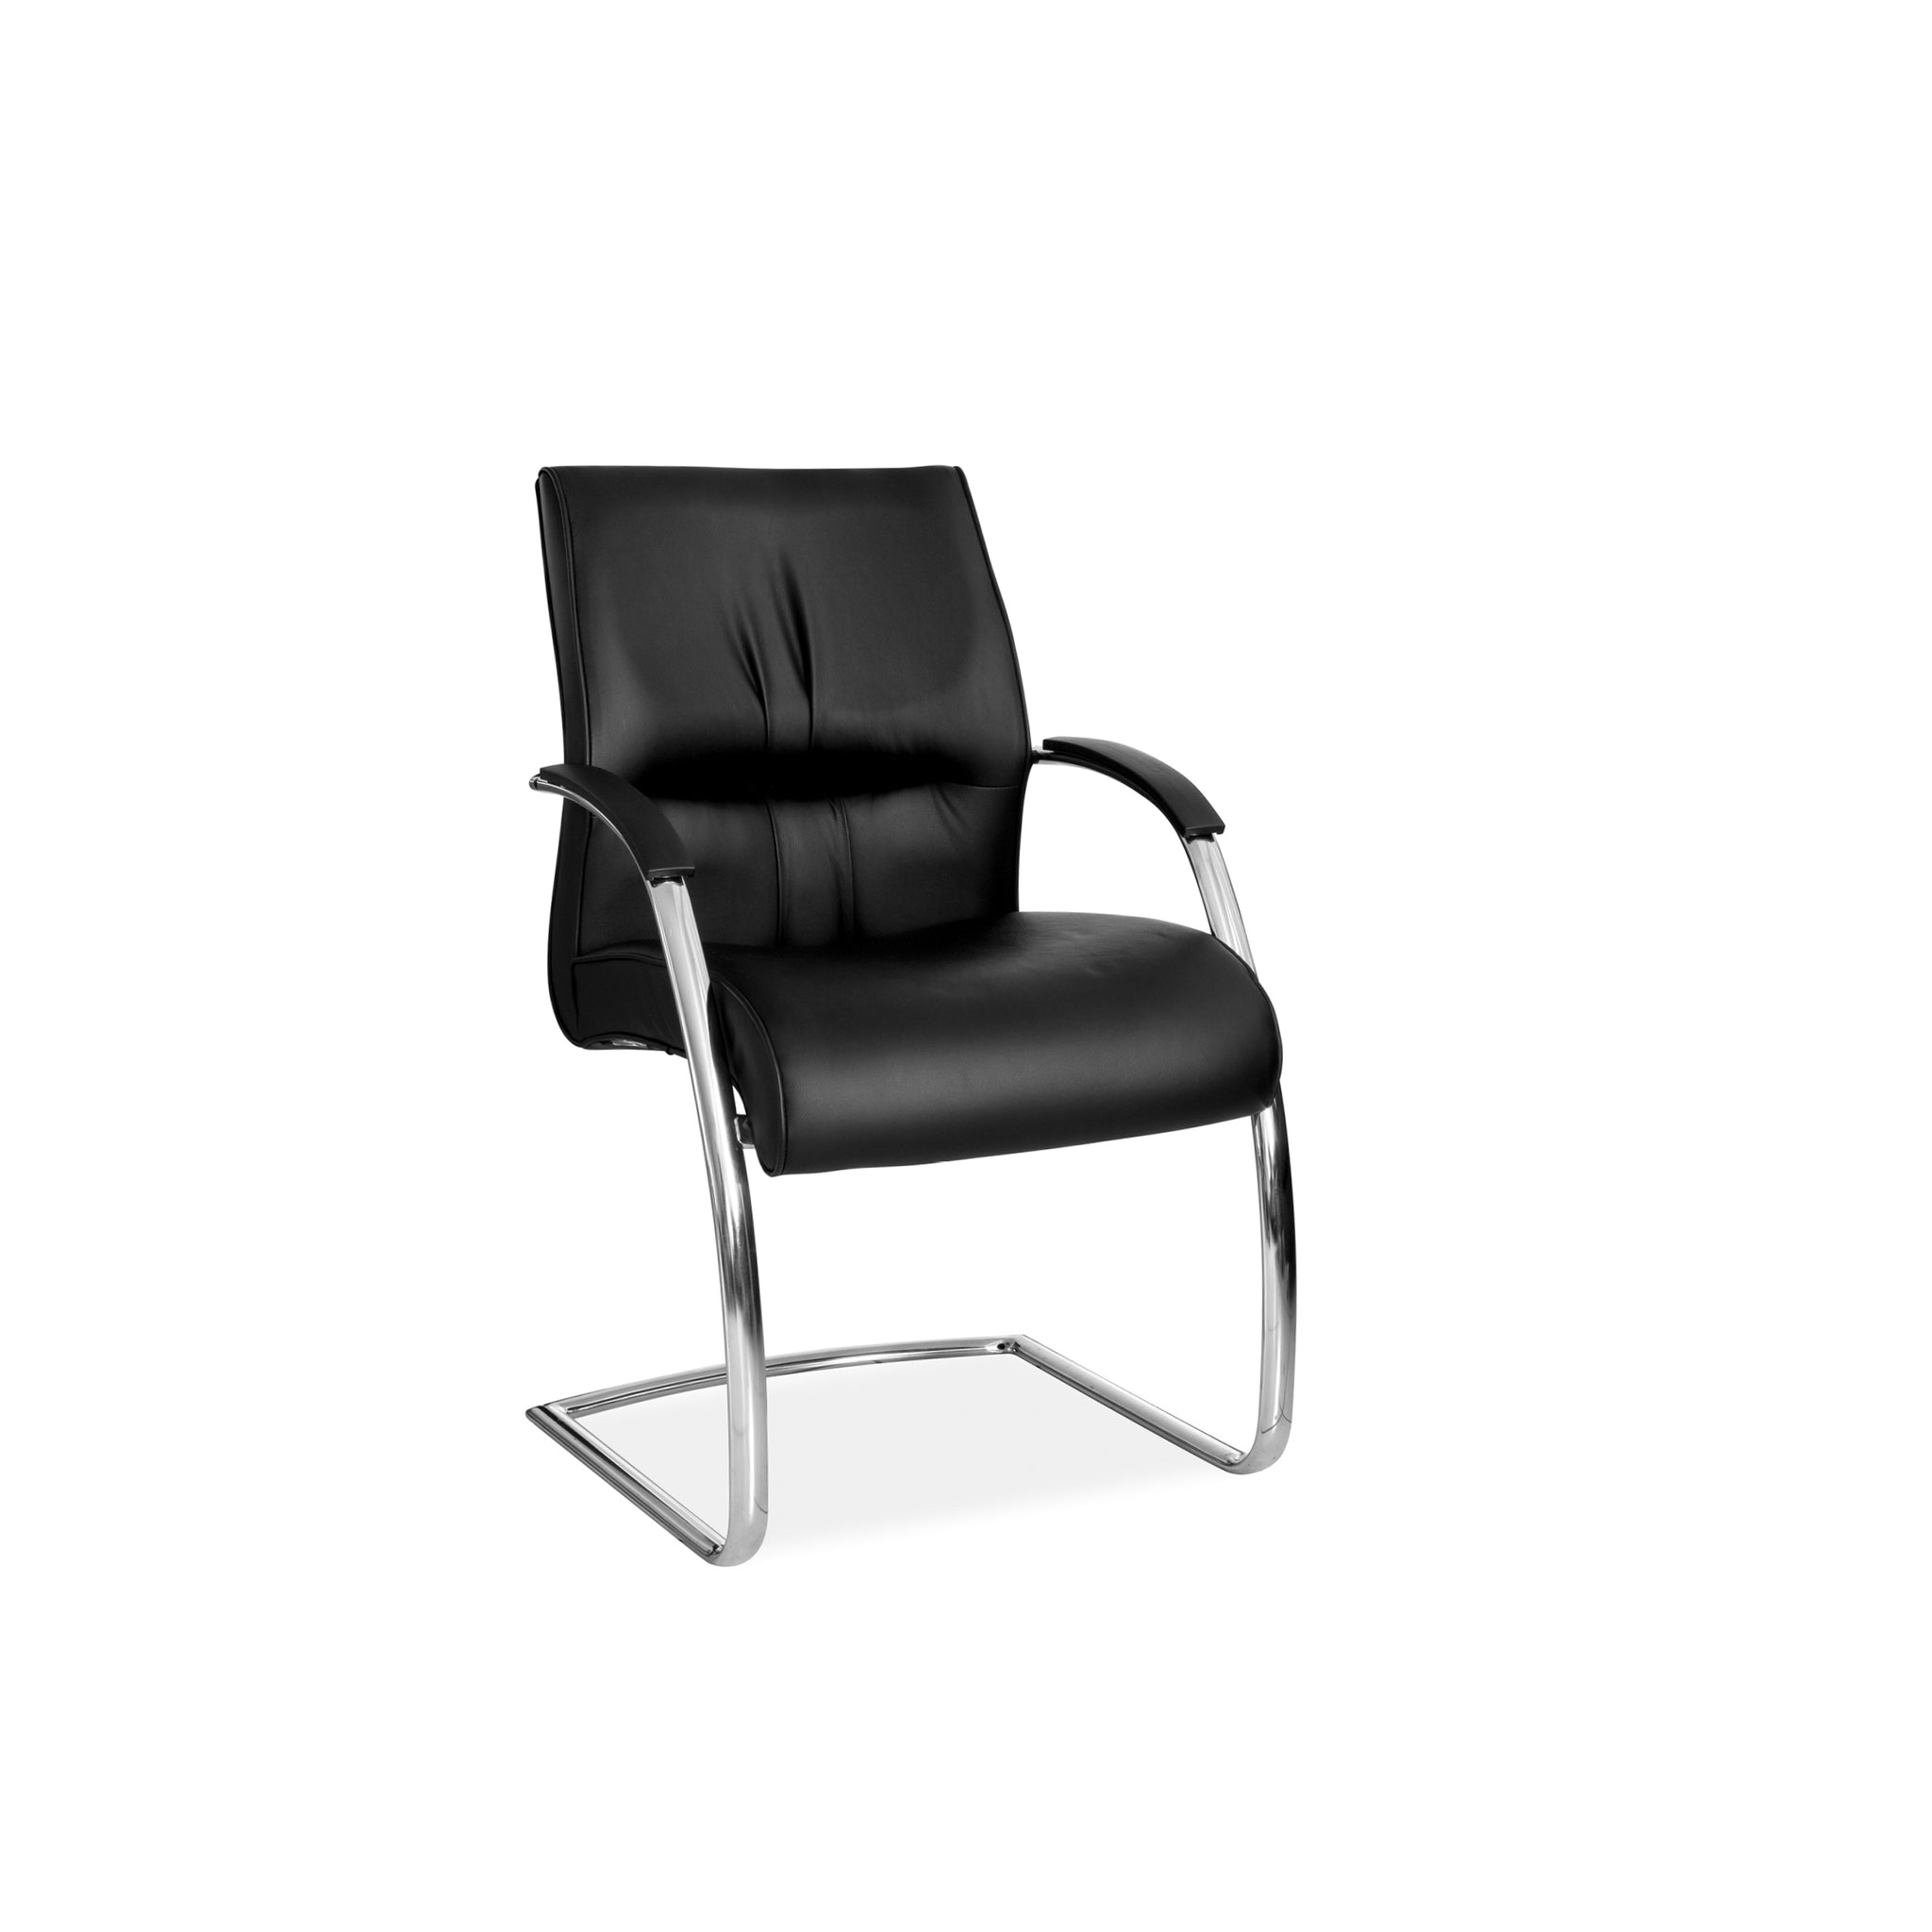 Hedcor Salvador Chrome office visitors chair